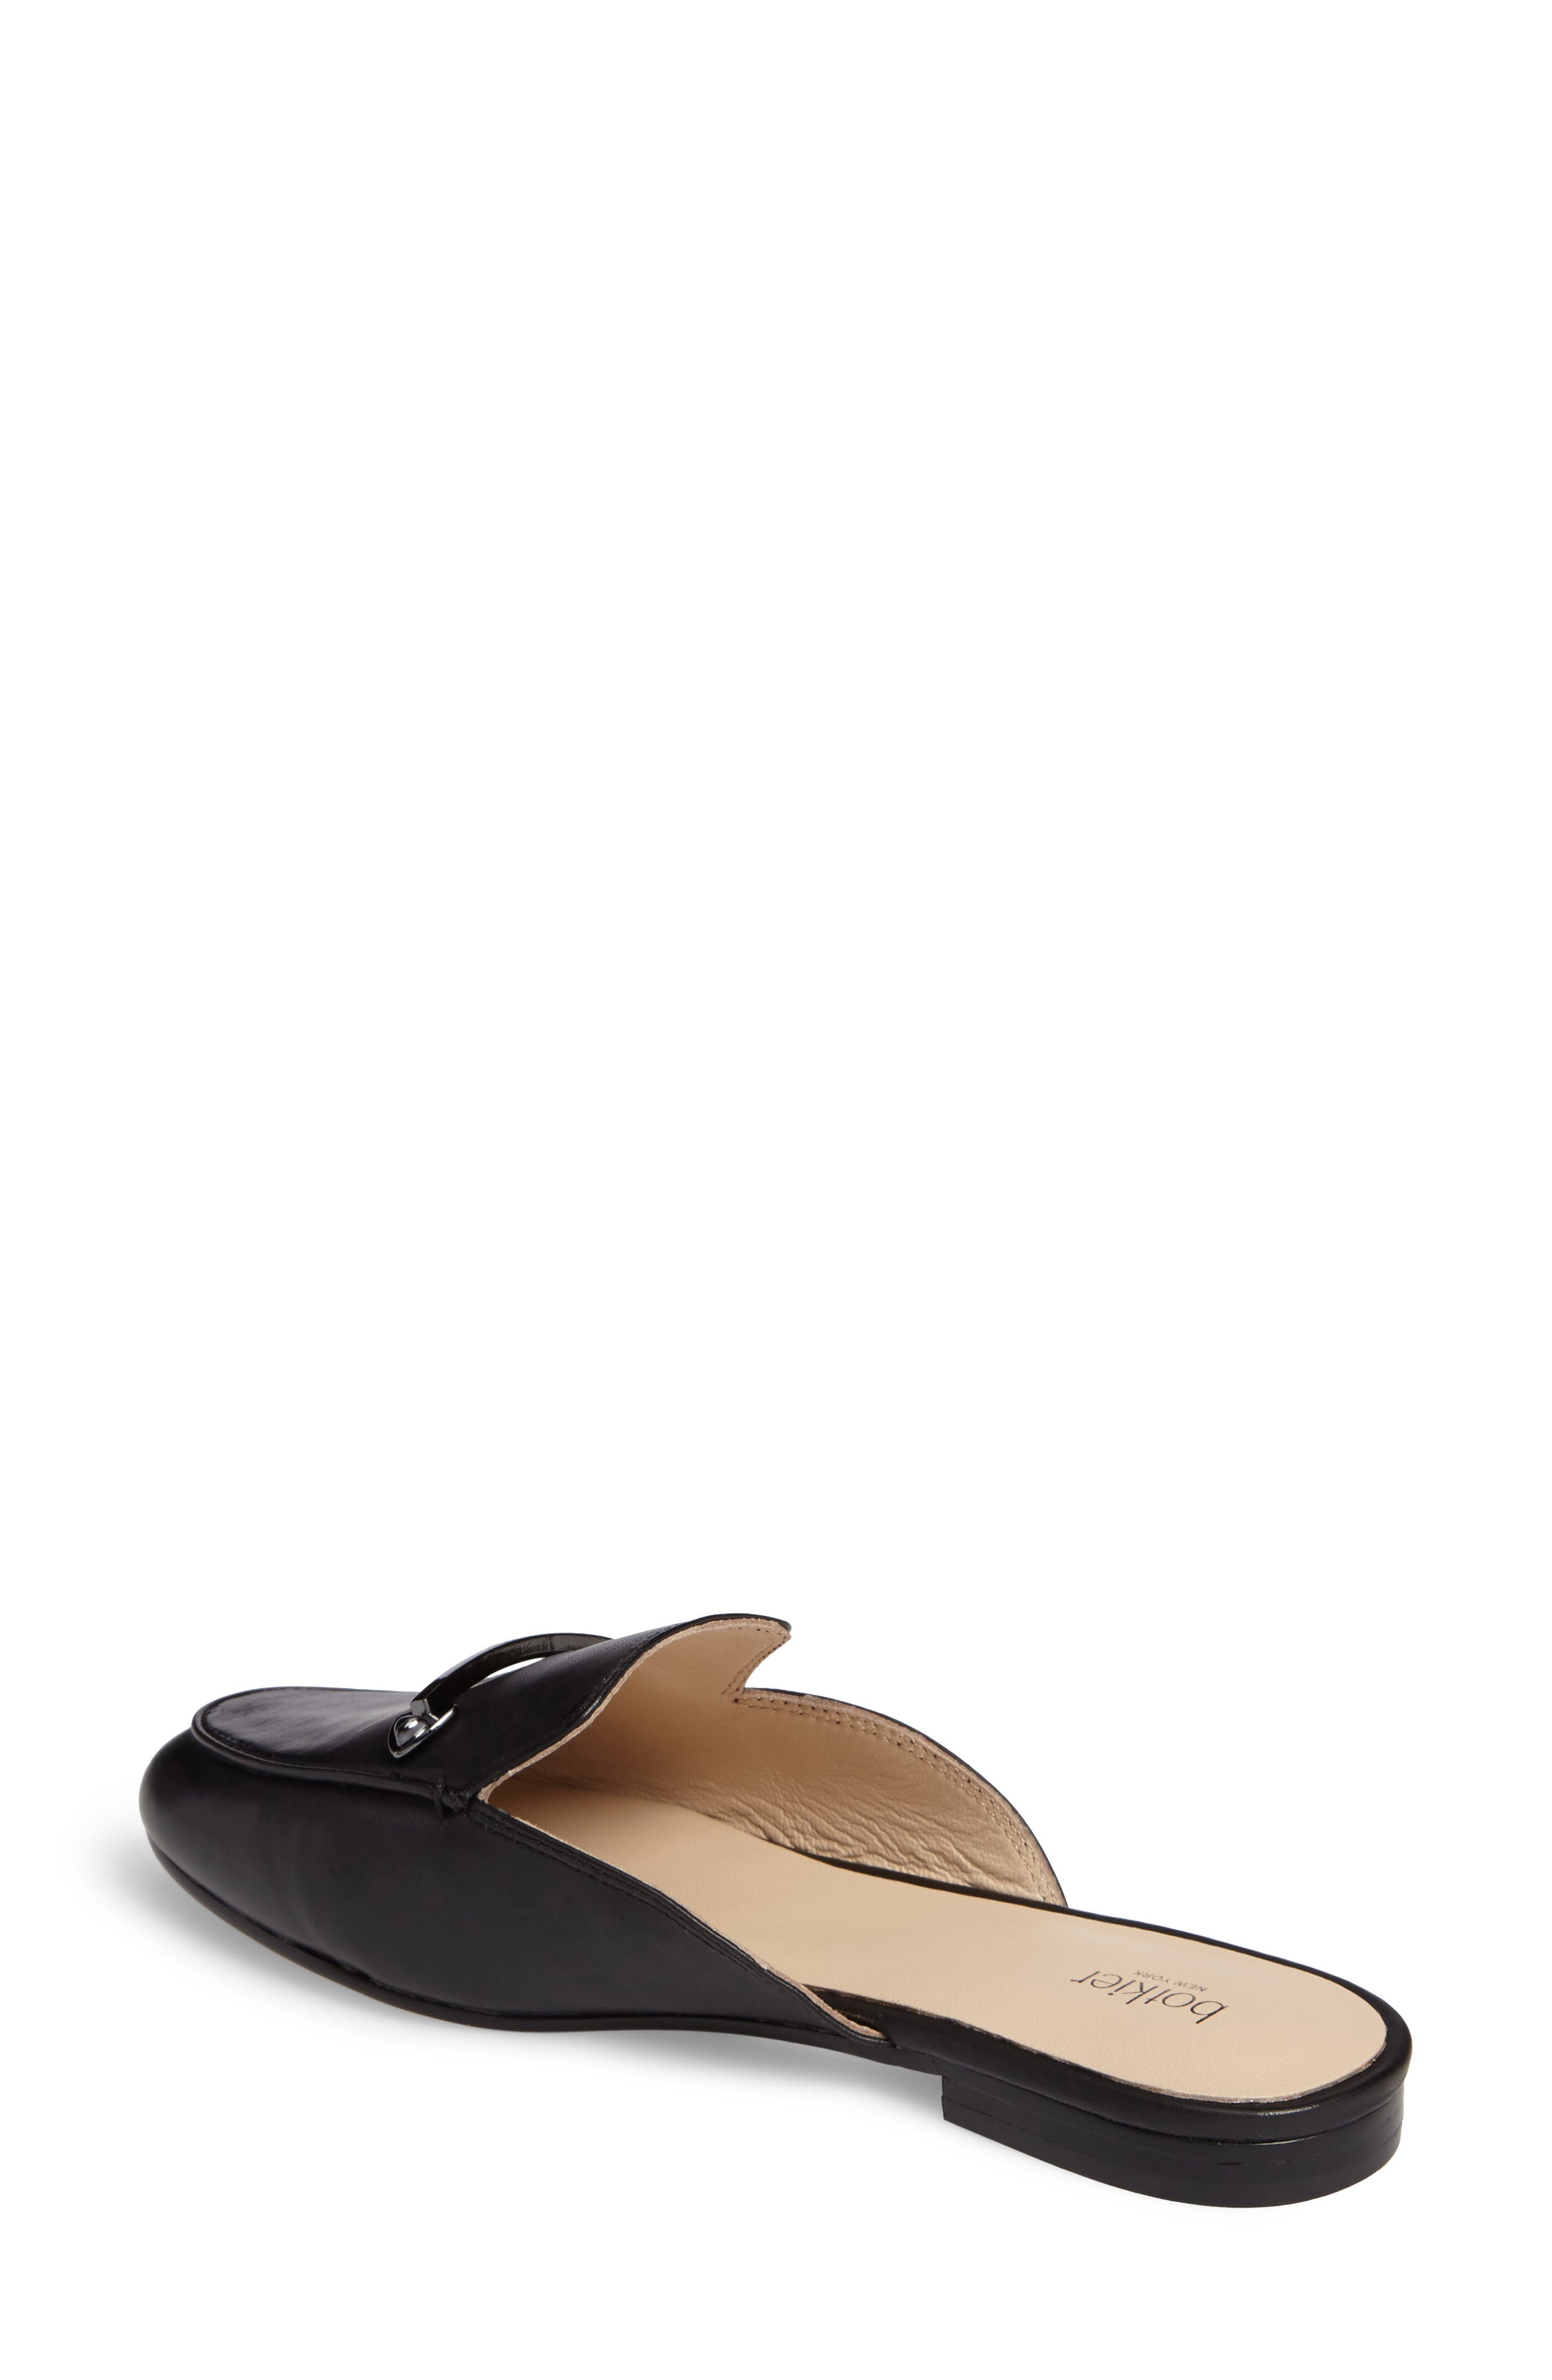 Clare Loafer Mule,                             Alternate thumbnail 2, color,                             Black